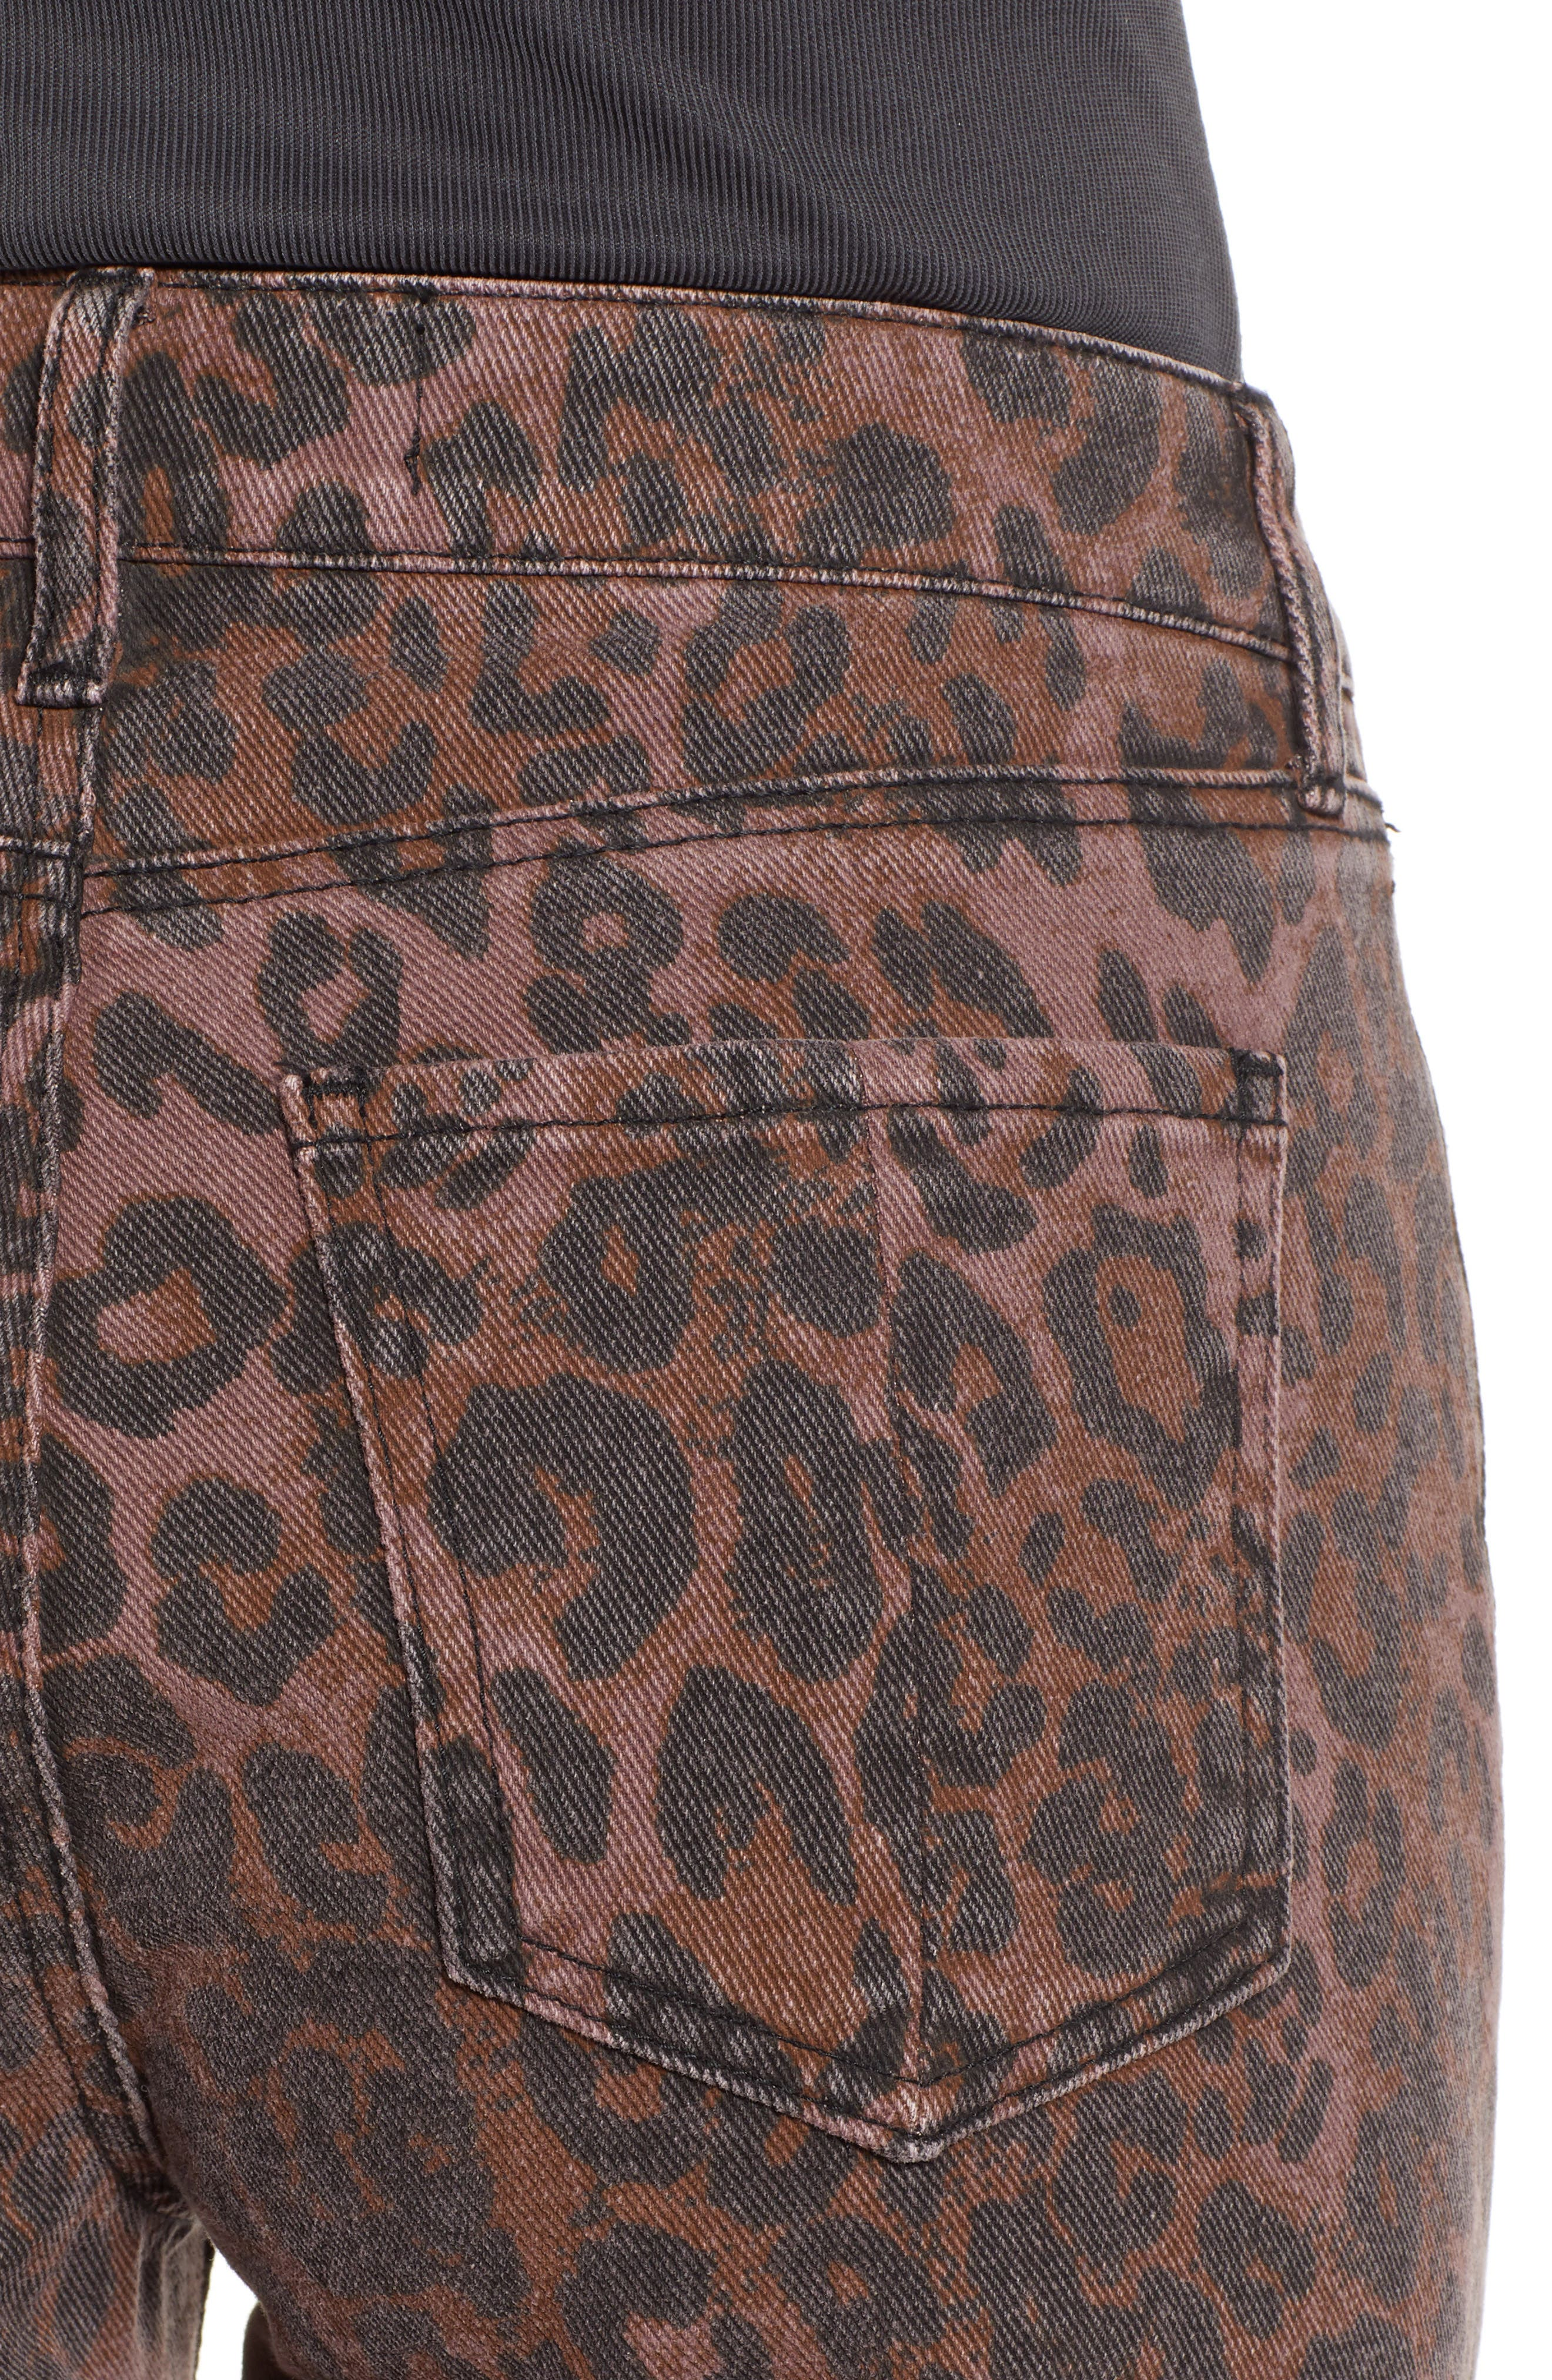 PROSPERITY DENIM, Leopard Print Skinny Jeans, Alternate thumbnail 5, color, LEOPARD